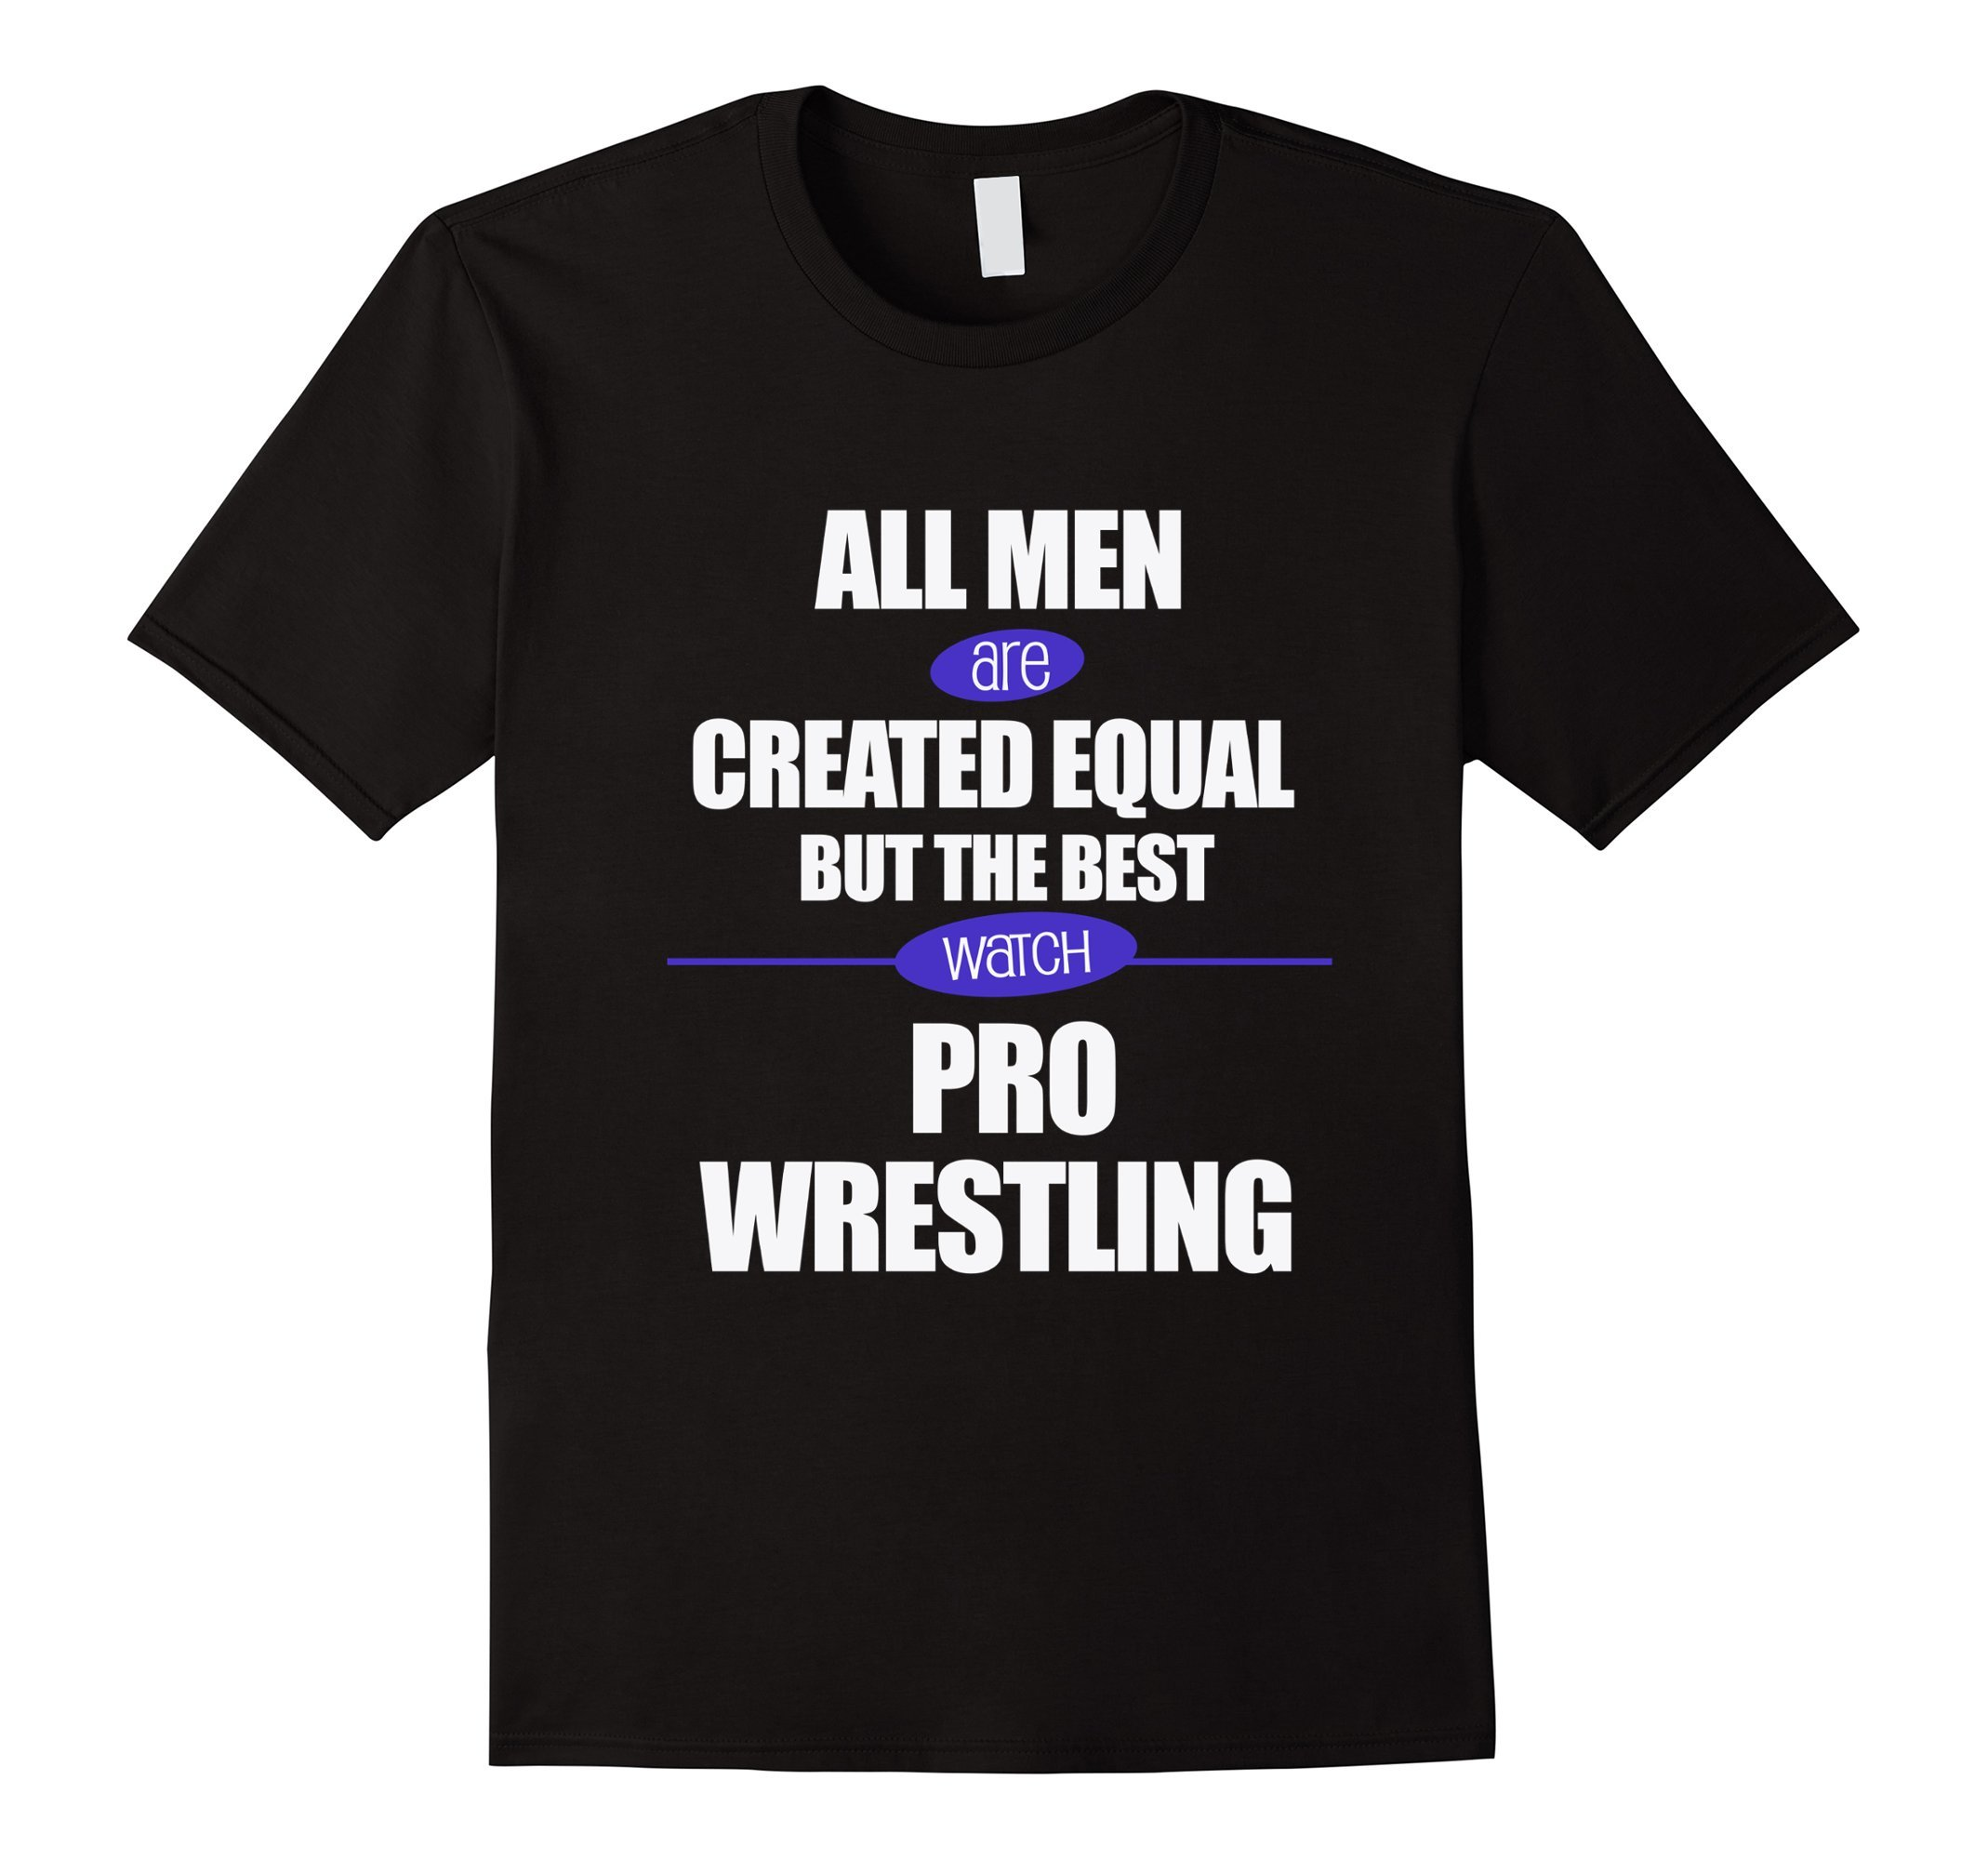 The Best Men Watch Pro Wrestling - Male Medium - Black